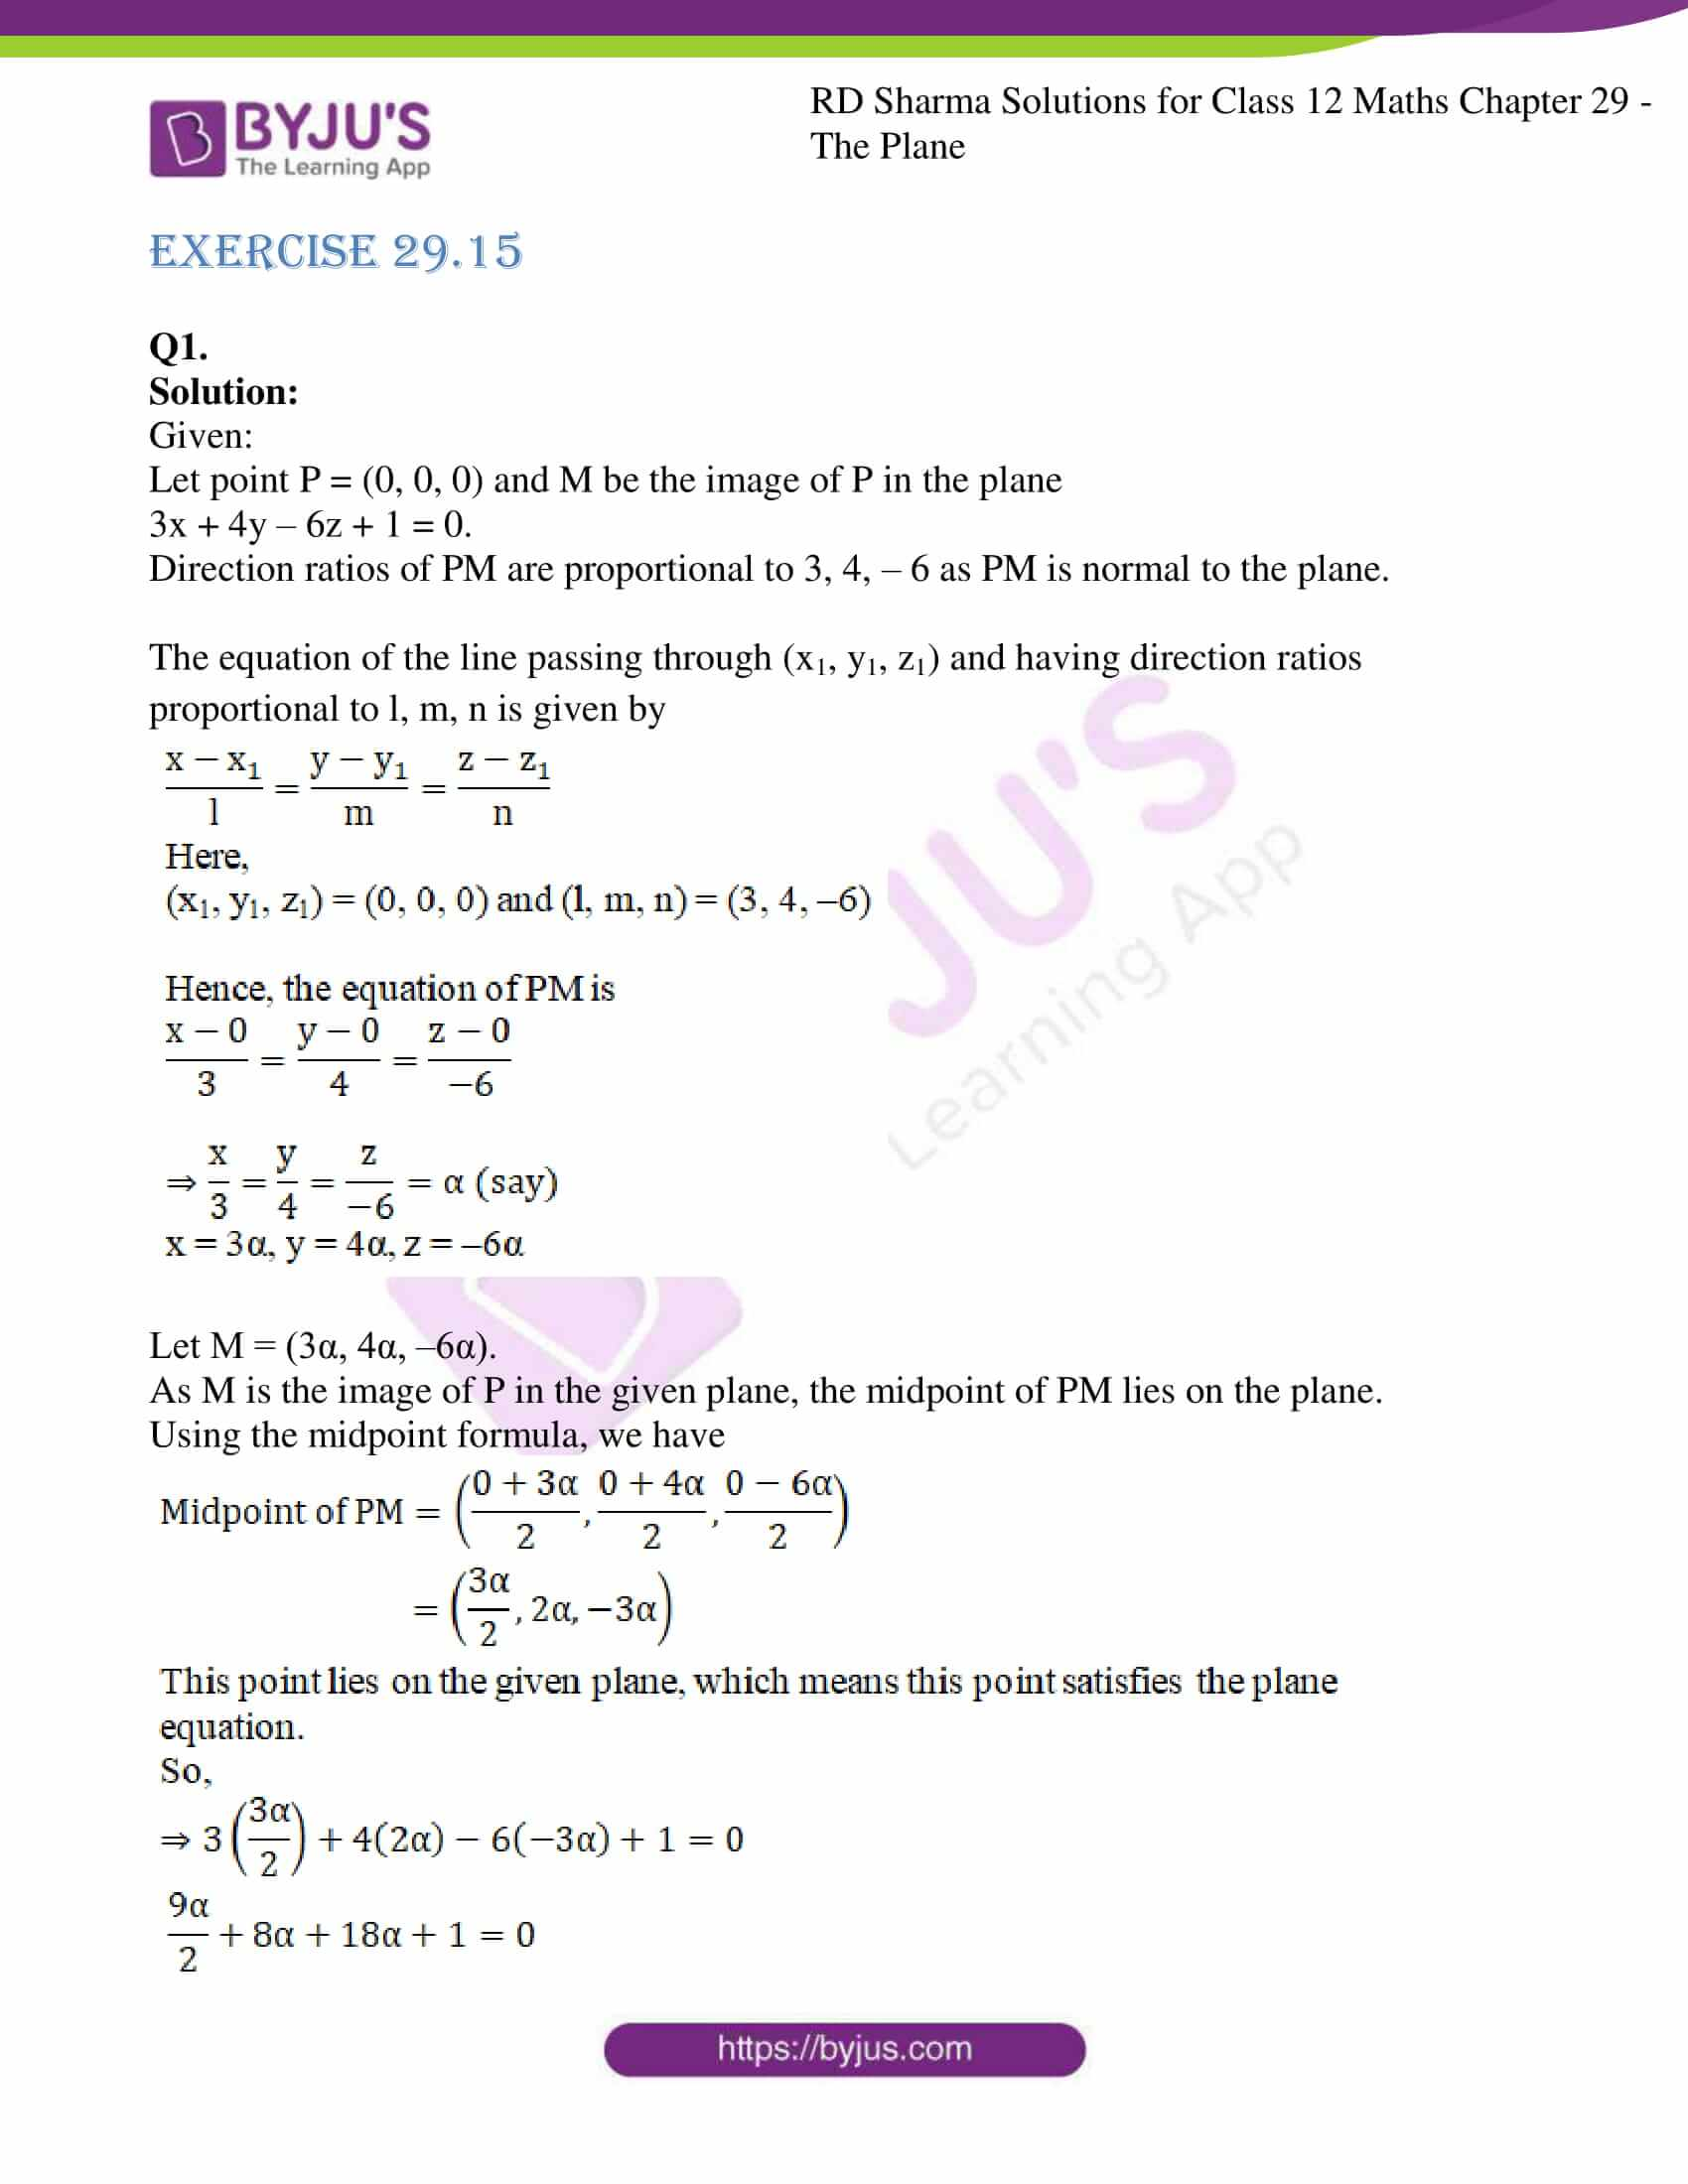 rd sharma solutions for class 12 maths chapter 29 ex 15 1